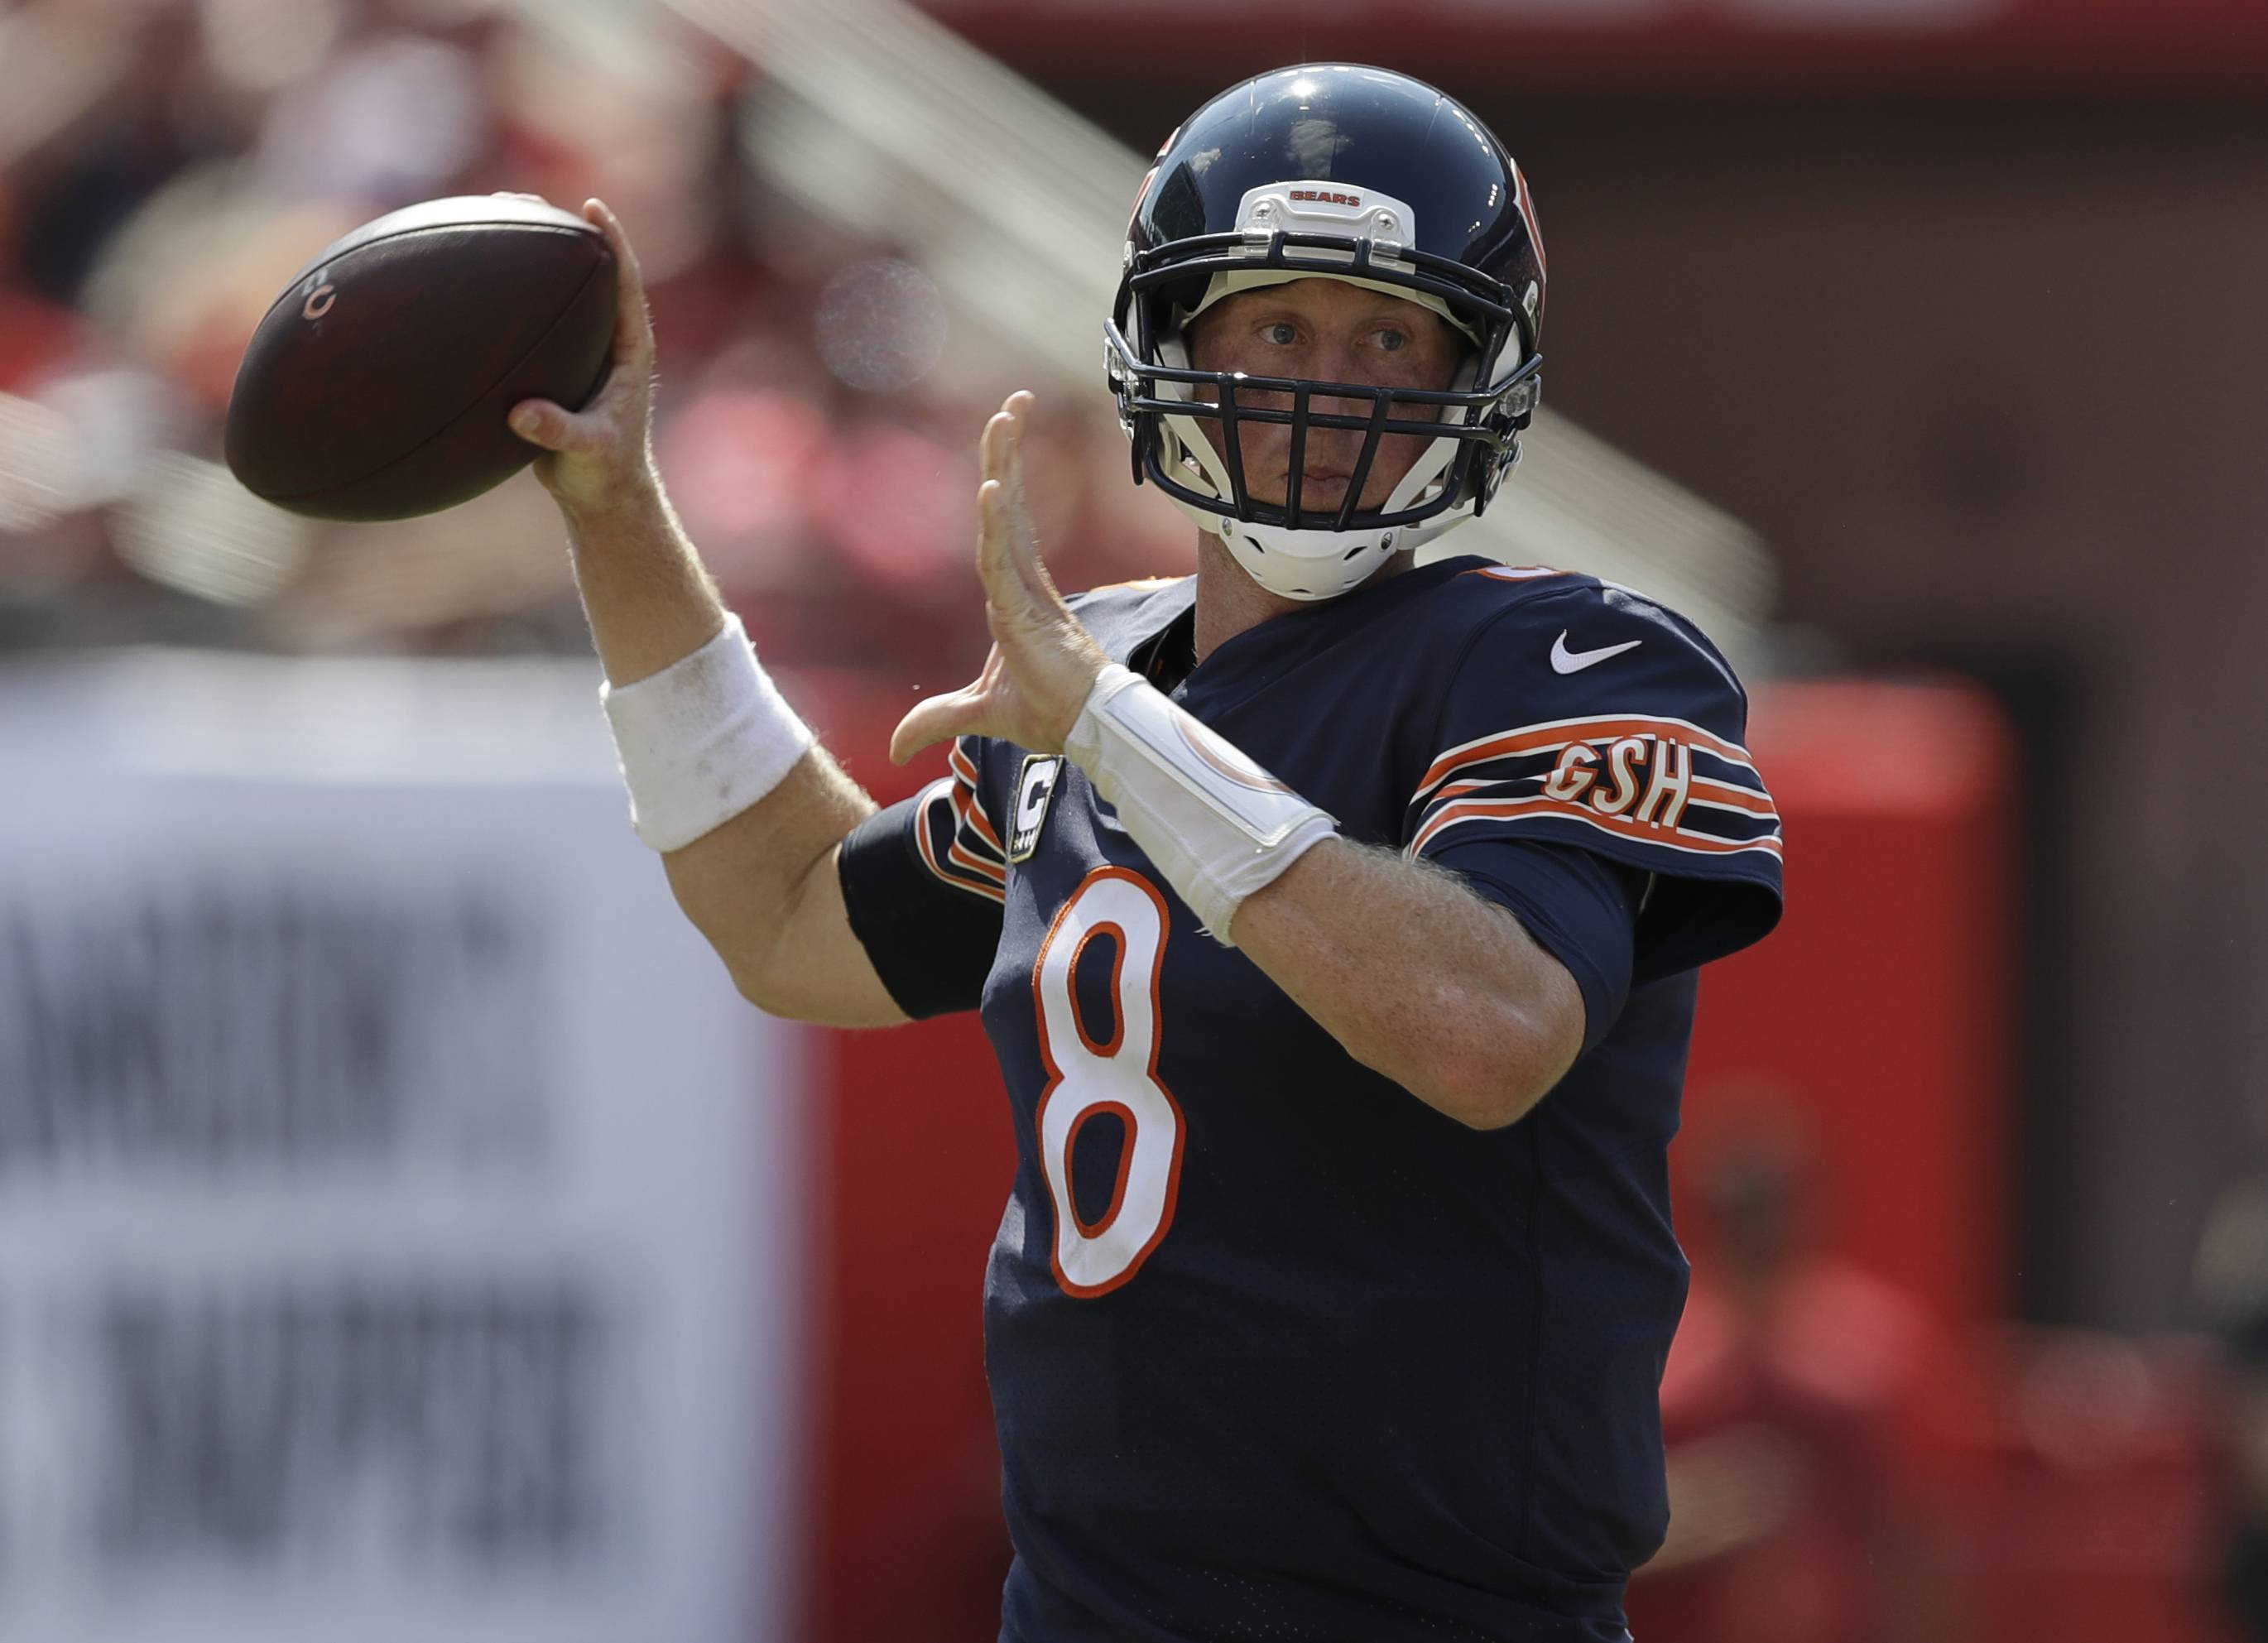 Bears quarterback Mike Glennon can't afford to have three turnovers against Pittsburgh on Sunday and expect to win the game.